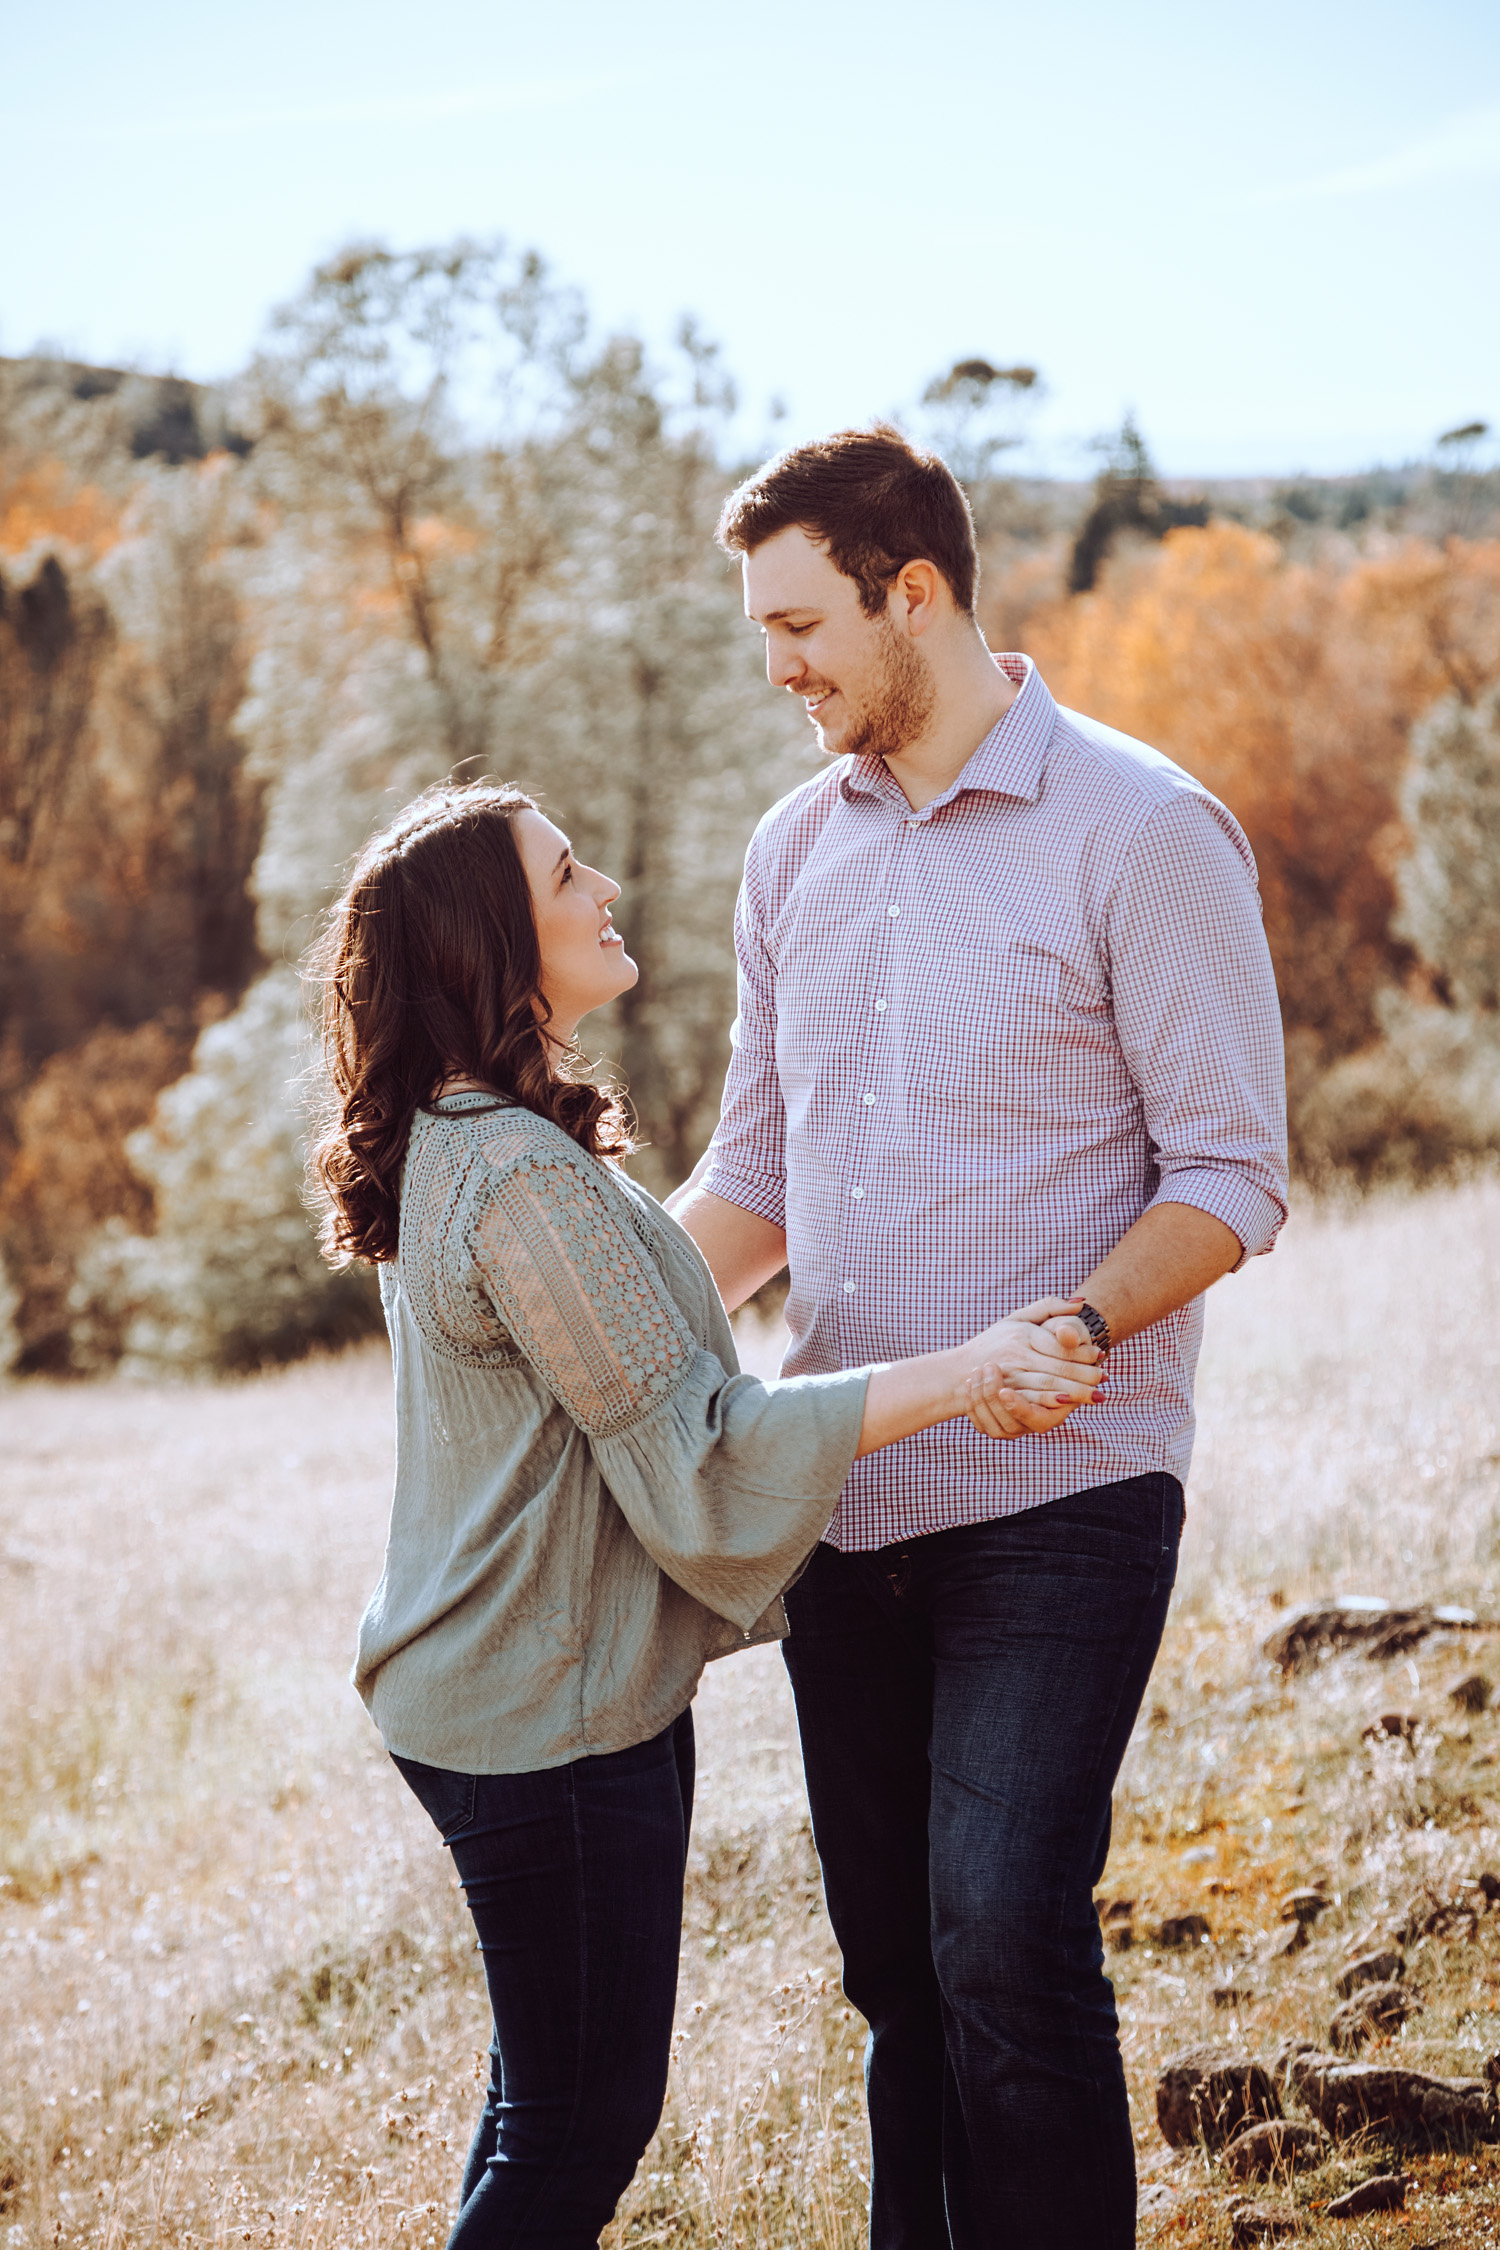 Engagement-photography-Upper-Park-Chico-CA-9-2.jpg